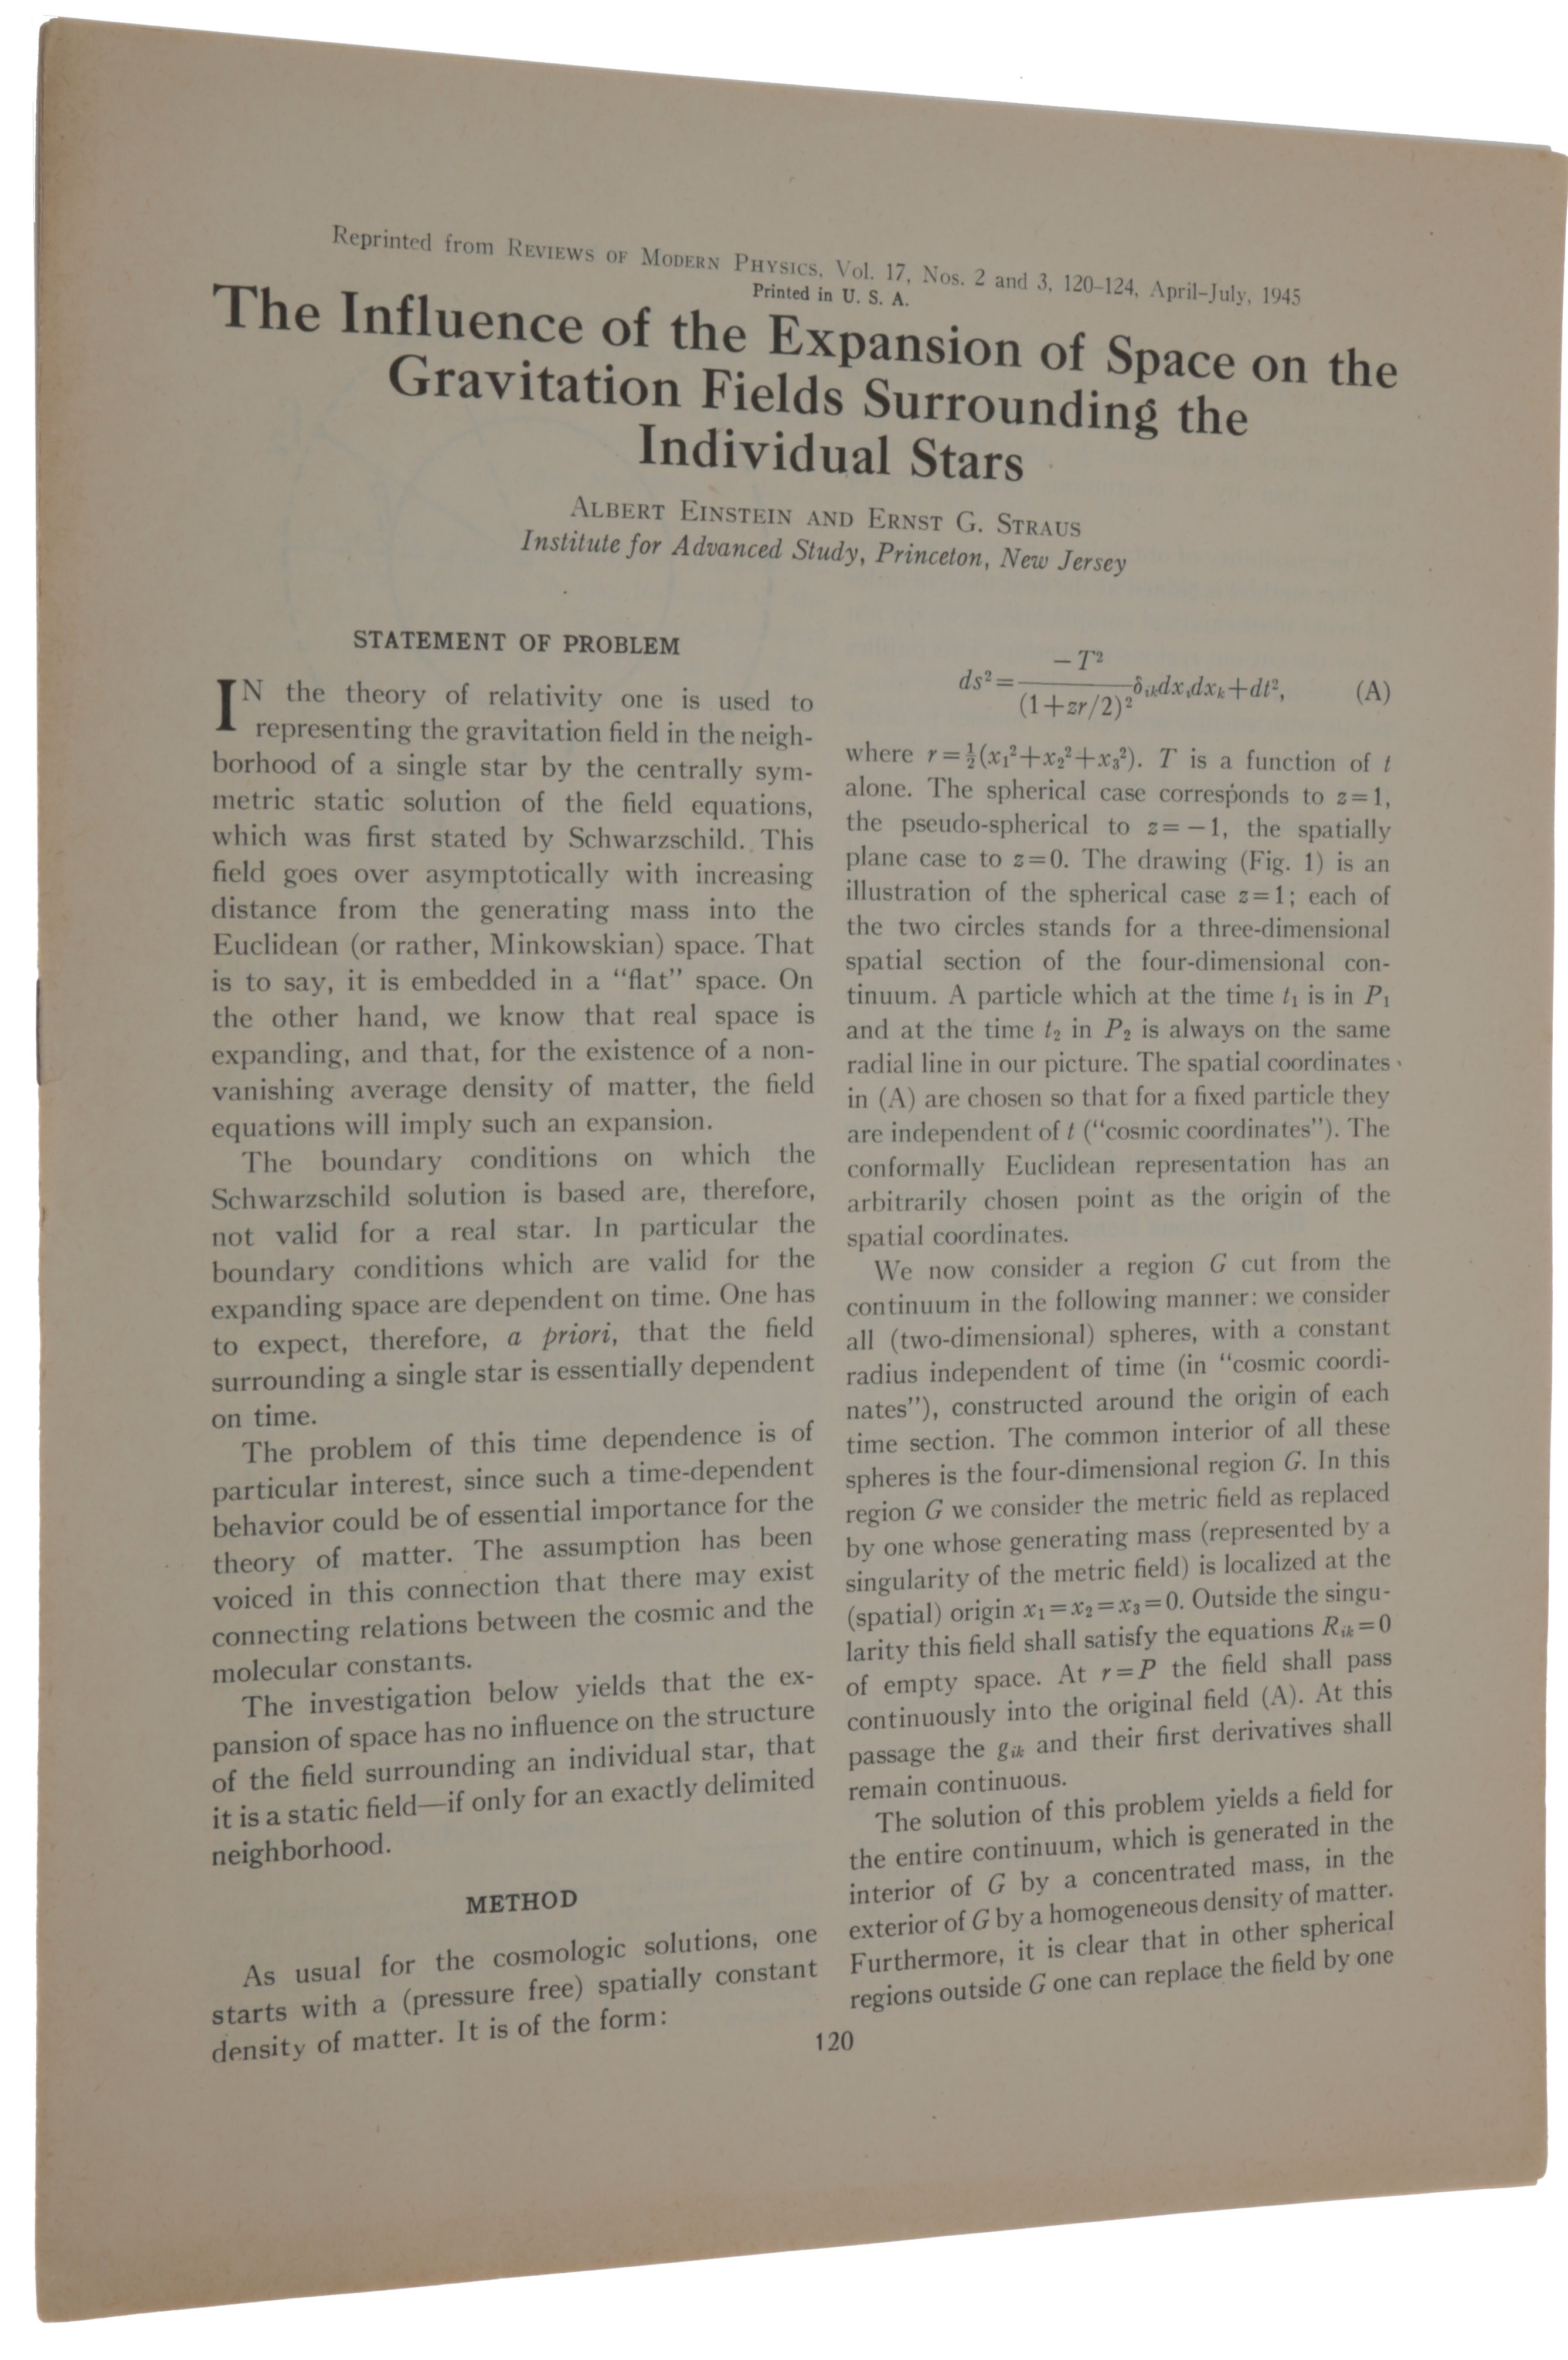 The Influence of the Expansion of Space on the Gravitation Fields Surrounding the Individual Stars. WITH: Corrections and Additional Remarks to Our Paper … Offprints from: Reviews of Modern Physics, vols. 17, no. 2/3, April-June, 1945 & vol. 18, no. 1, January-March, 1946. Albert EINSTEIN, Ernst Gabor STRAUS.